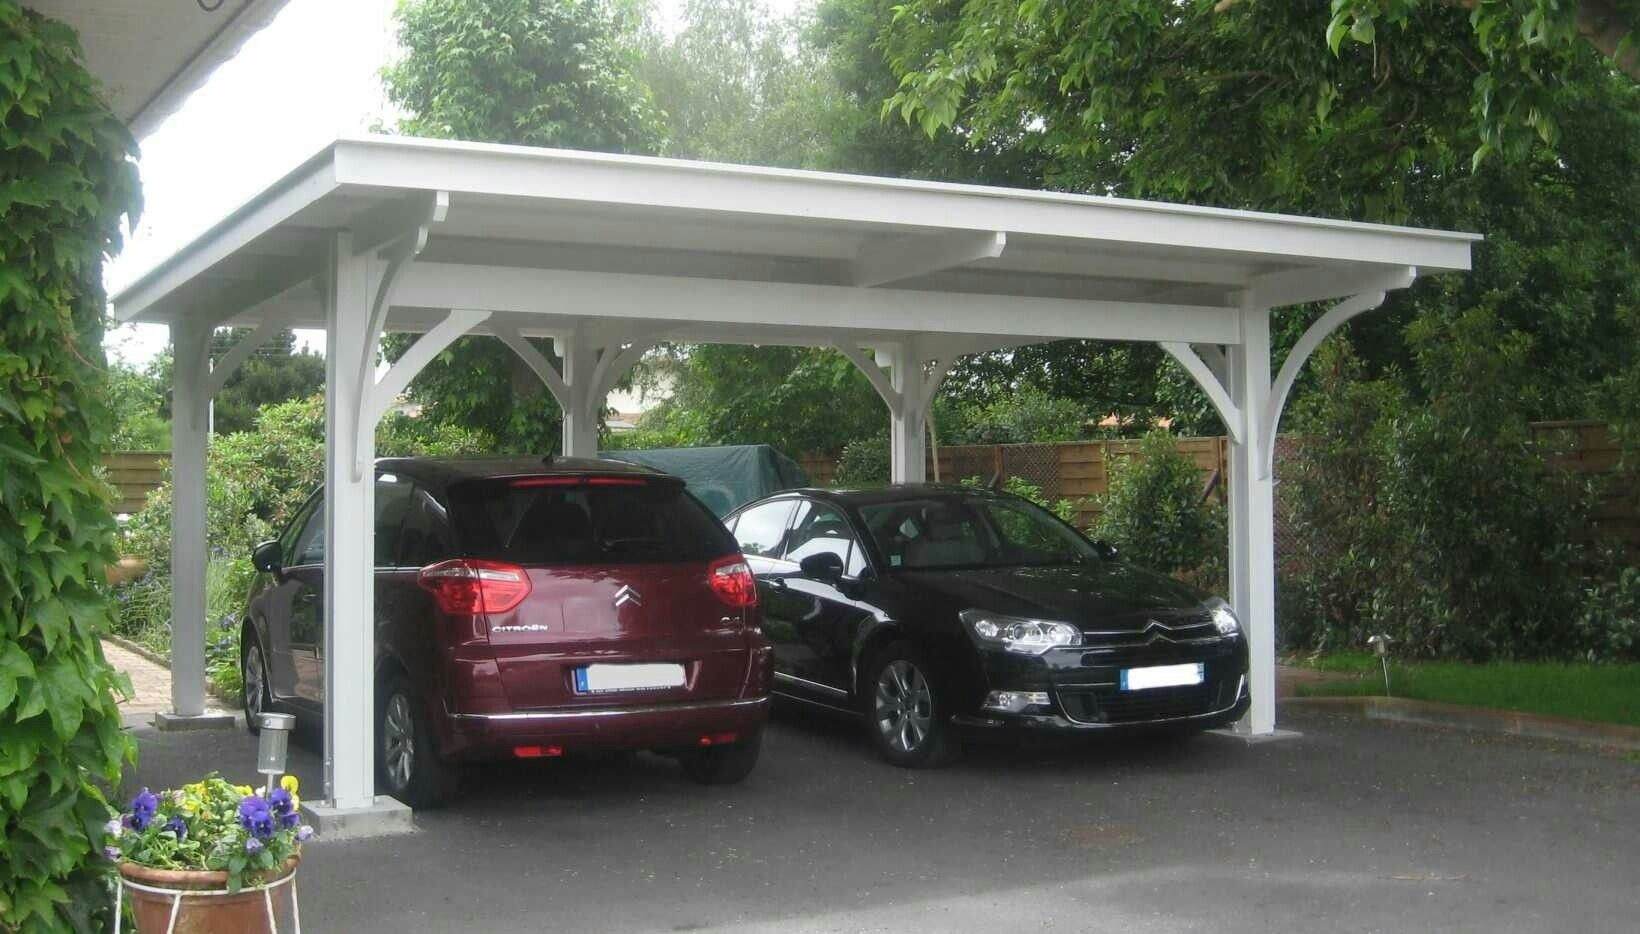 Pin by Cindy Mihalick on DIY Carport plans, Pergola